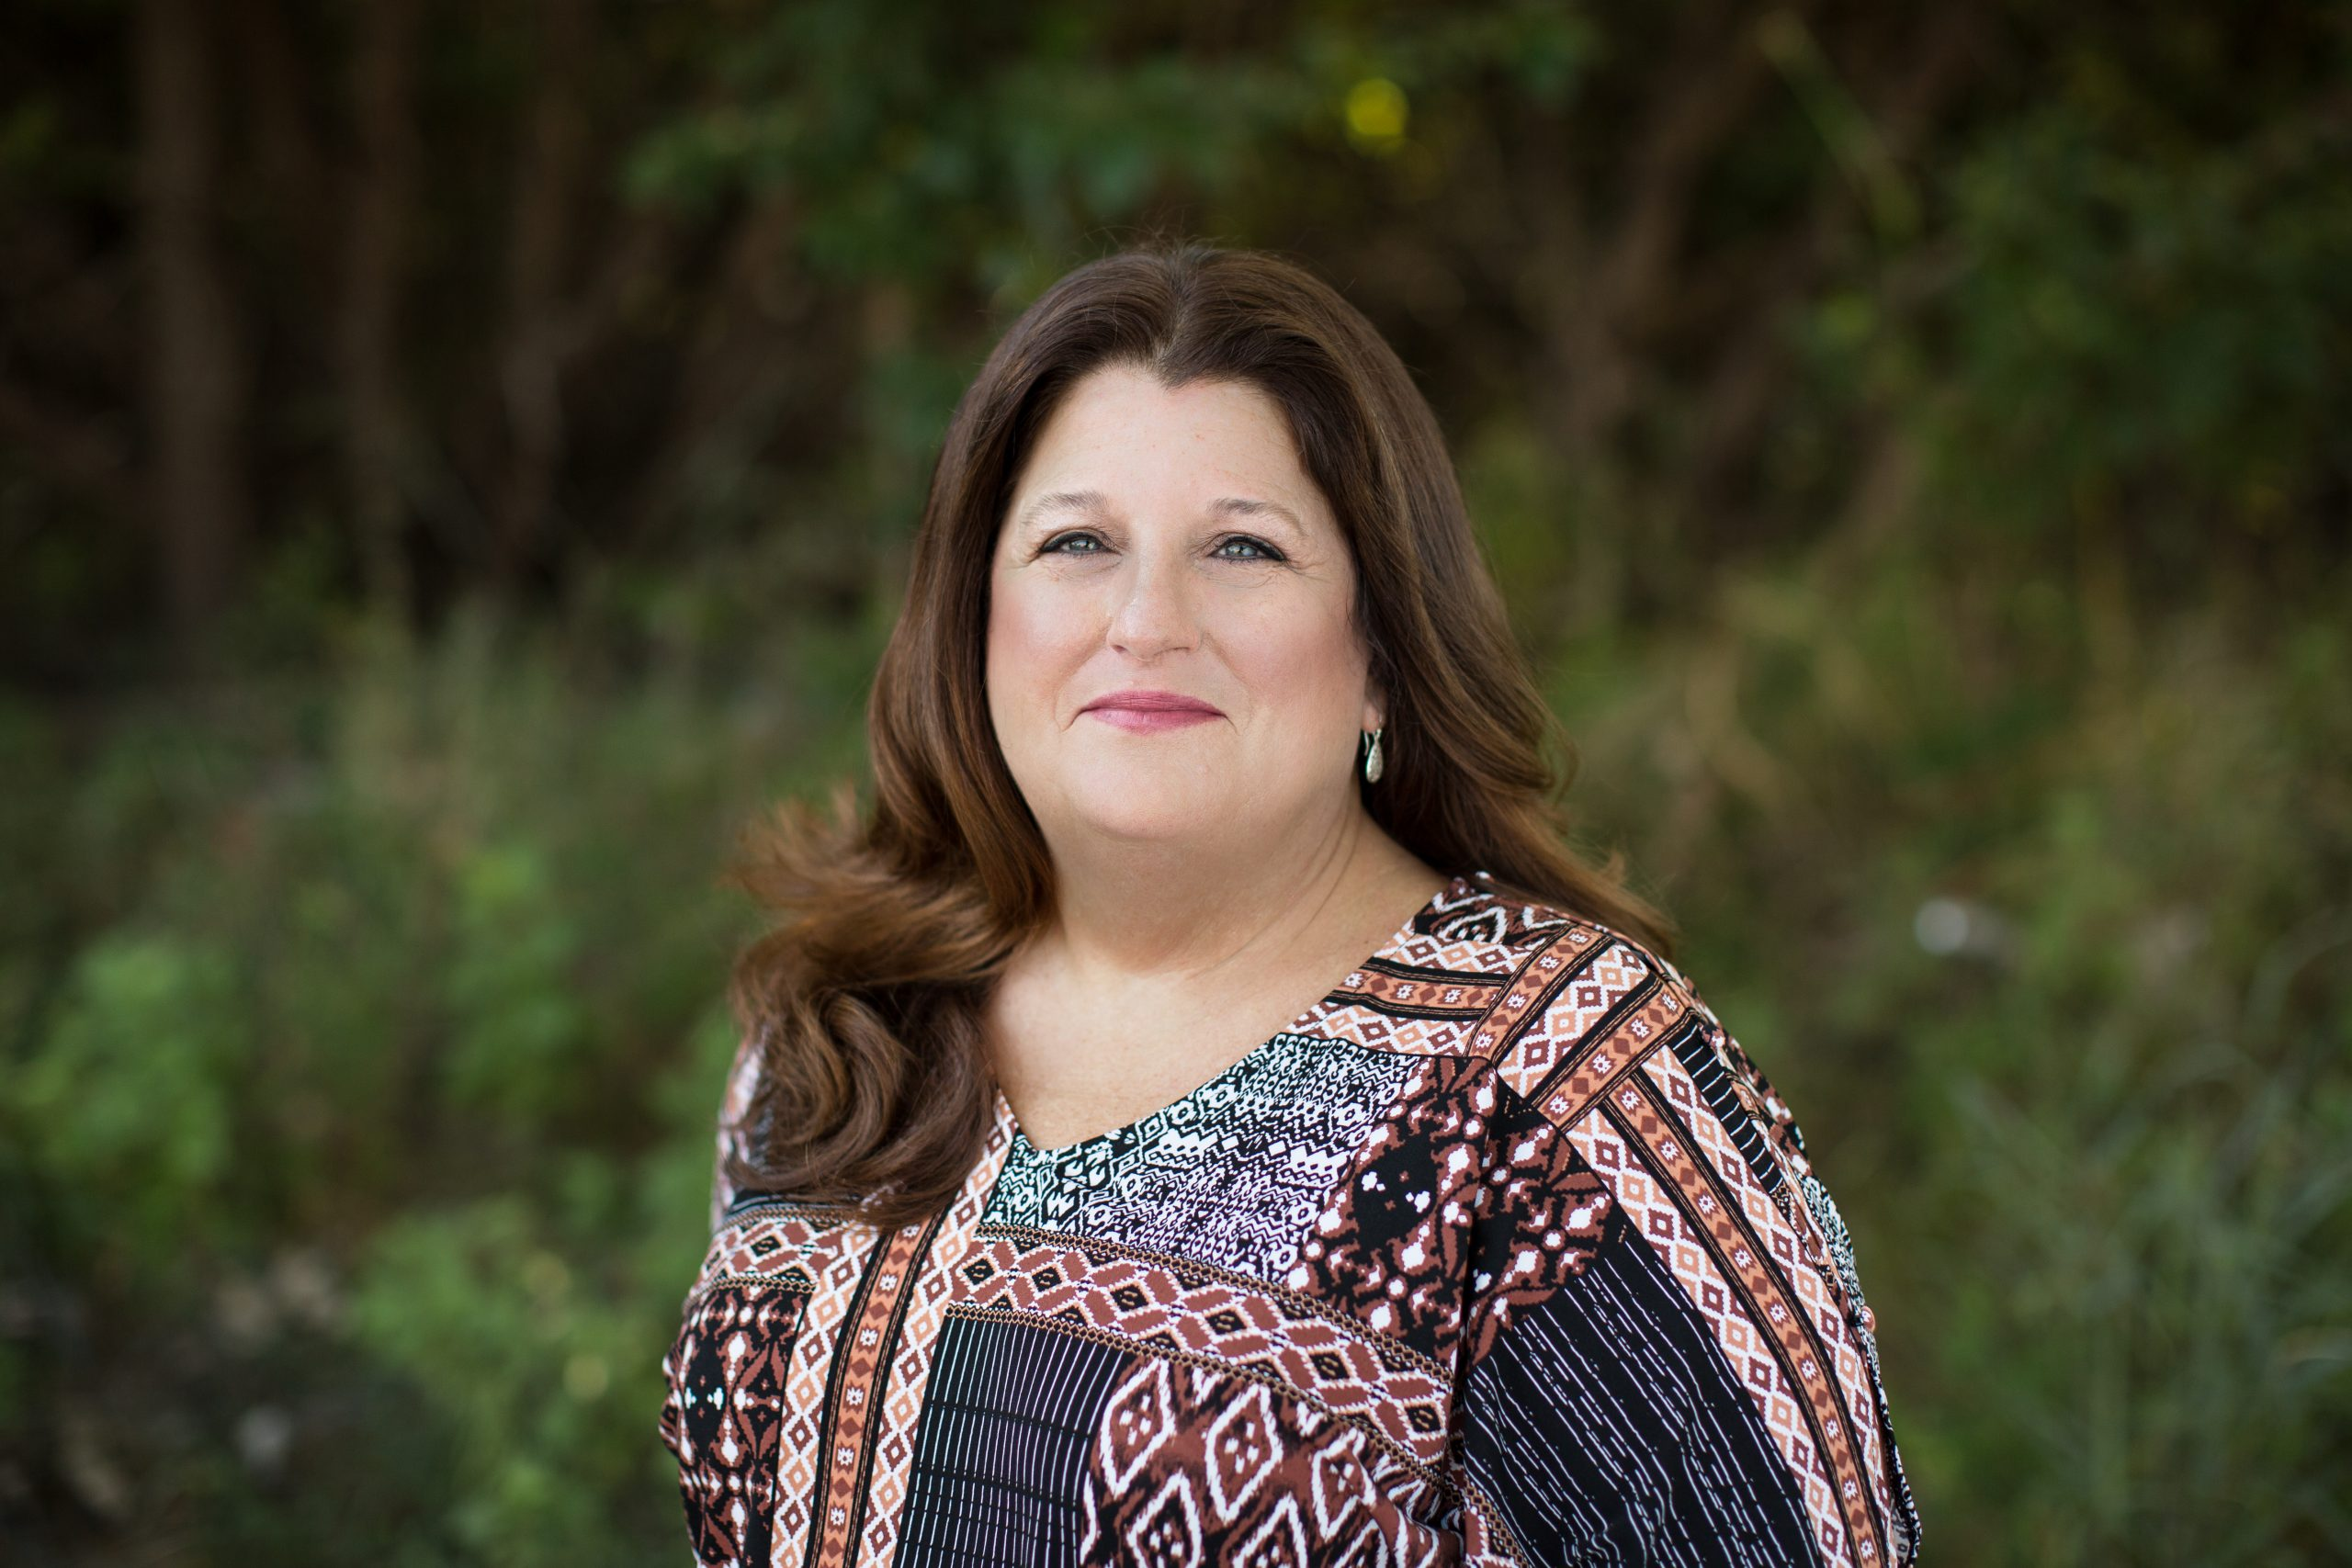 Linda Hutto | Human Resources | R.K. Bass Electric Company